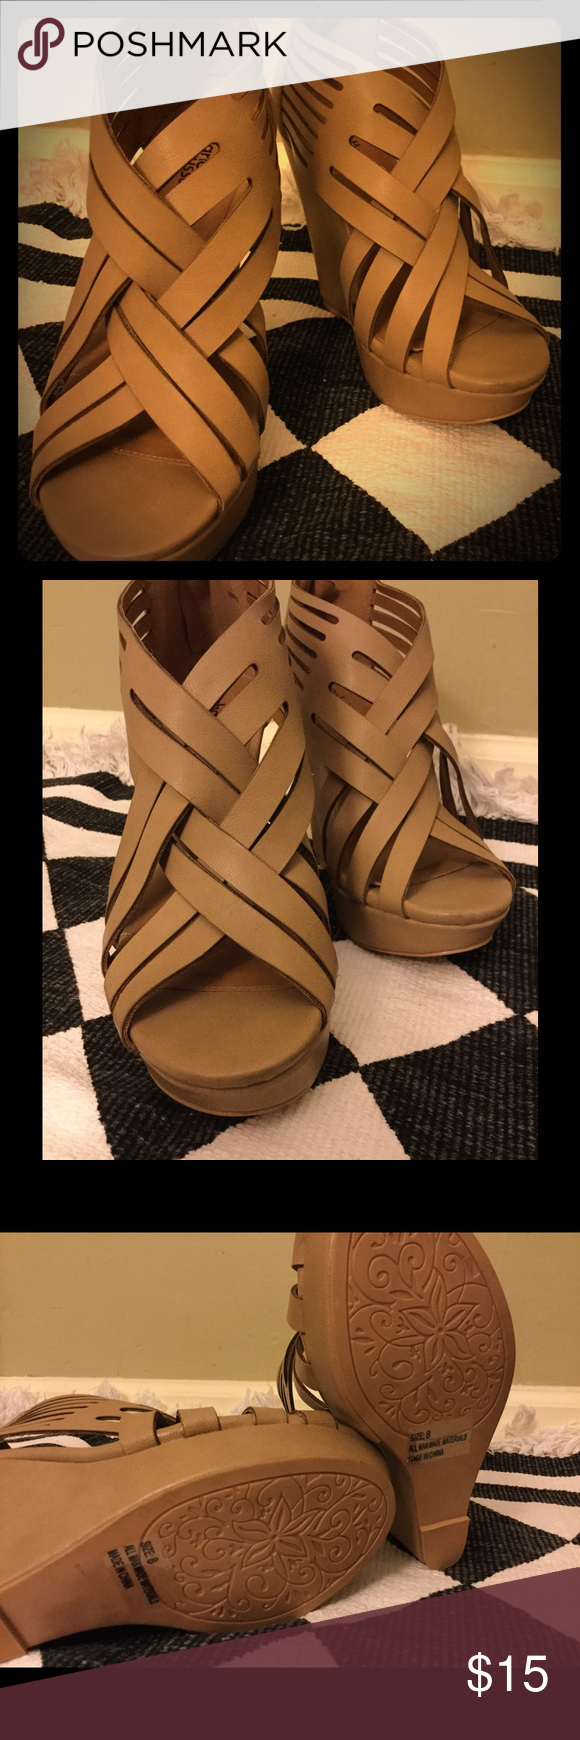 Womens sandals that zip up the back - Shop Women S Charlotte Russe Cream Tan Size Sandals At A Discounted Price At Poshmark Description Braided Tan Wedges Zip Up Back Euc